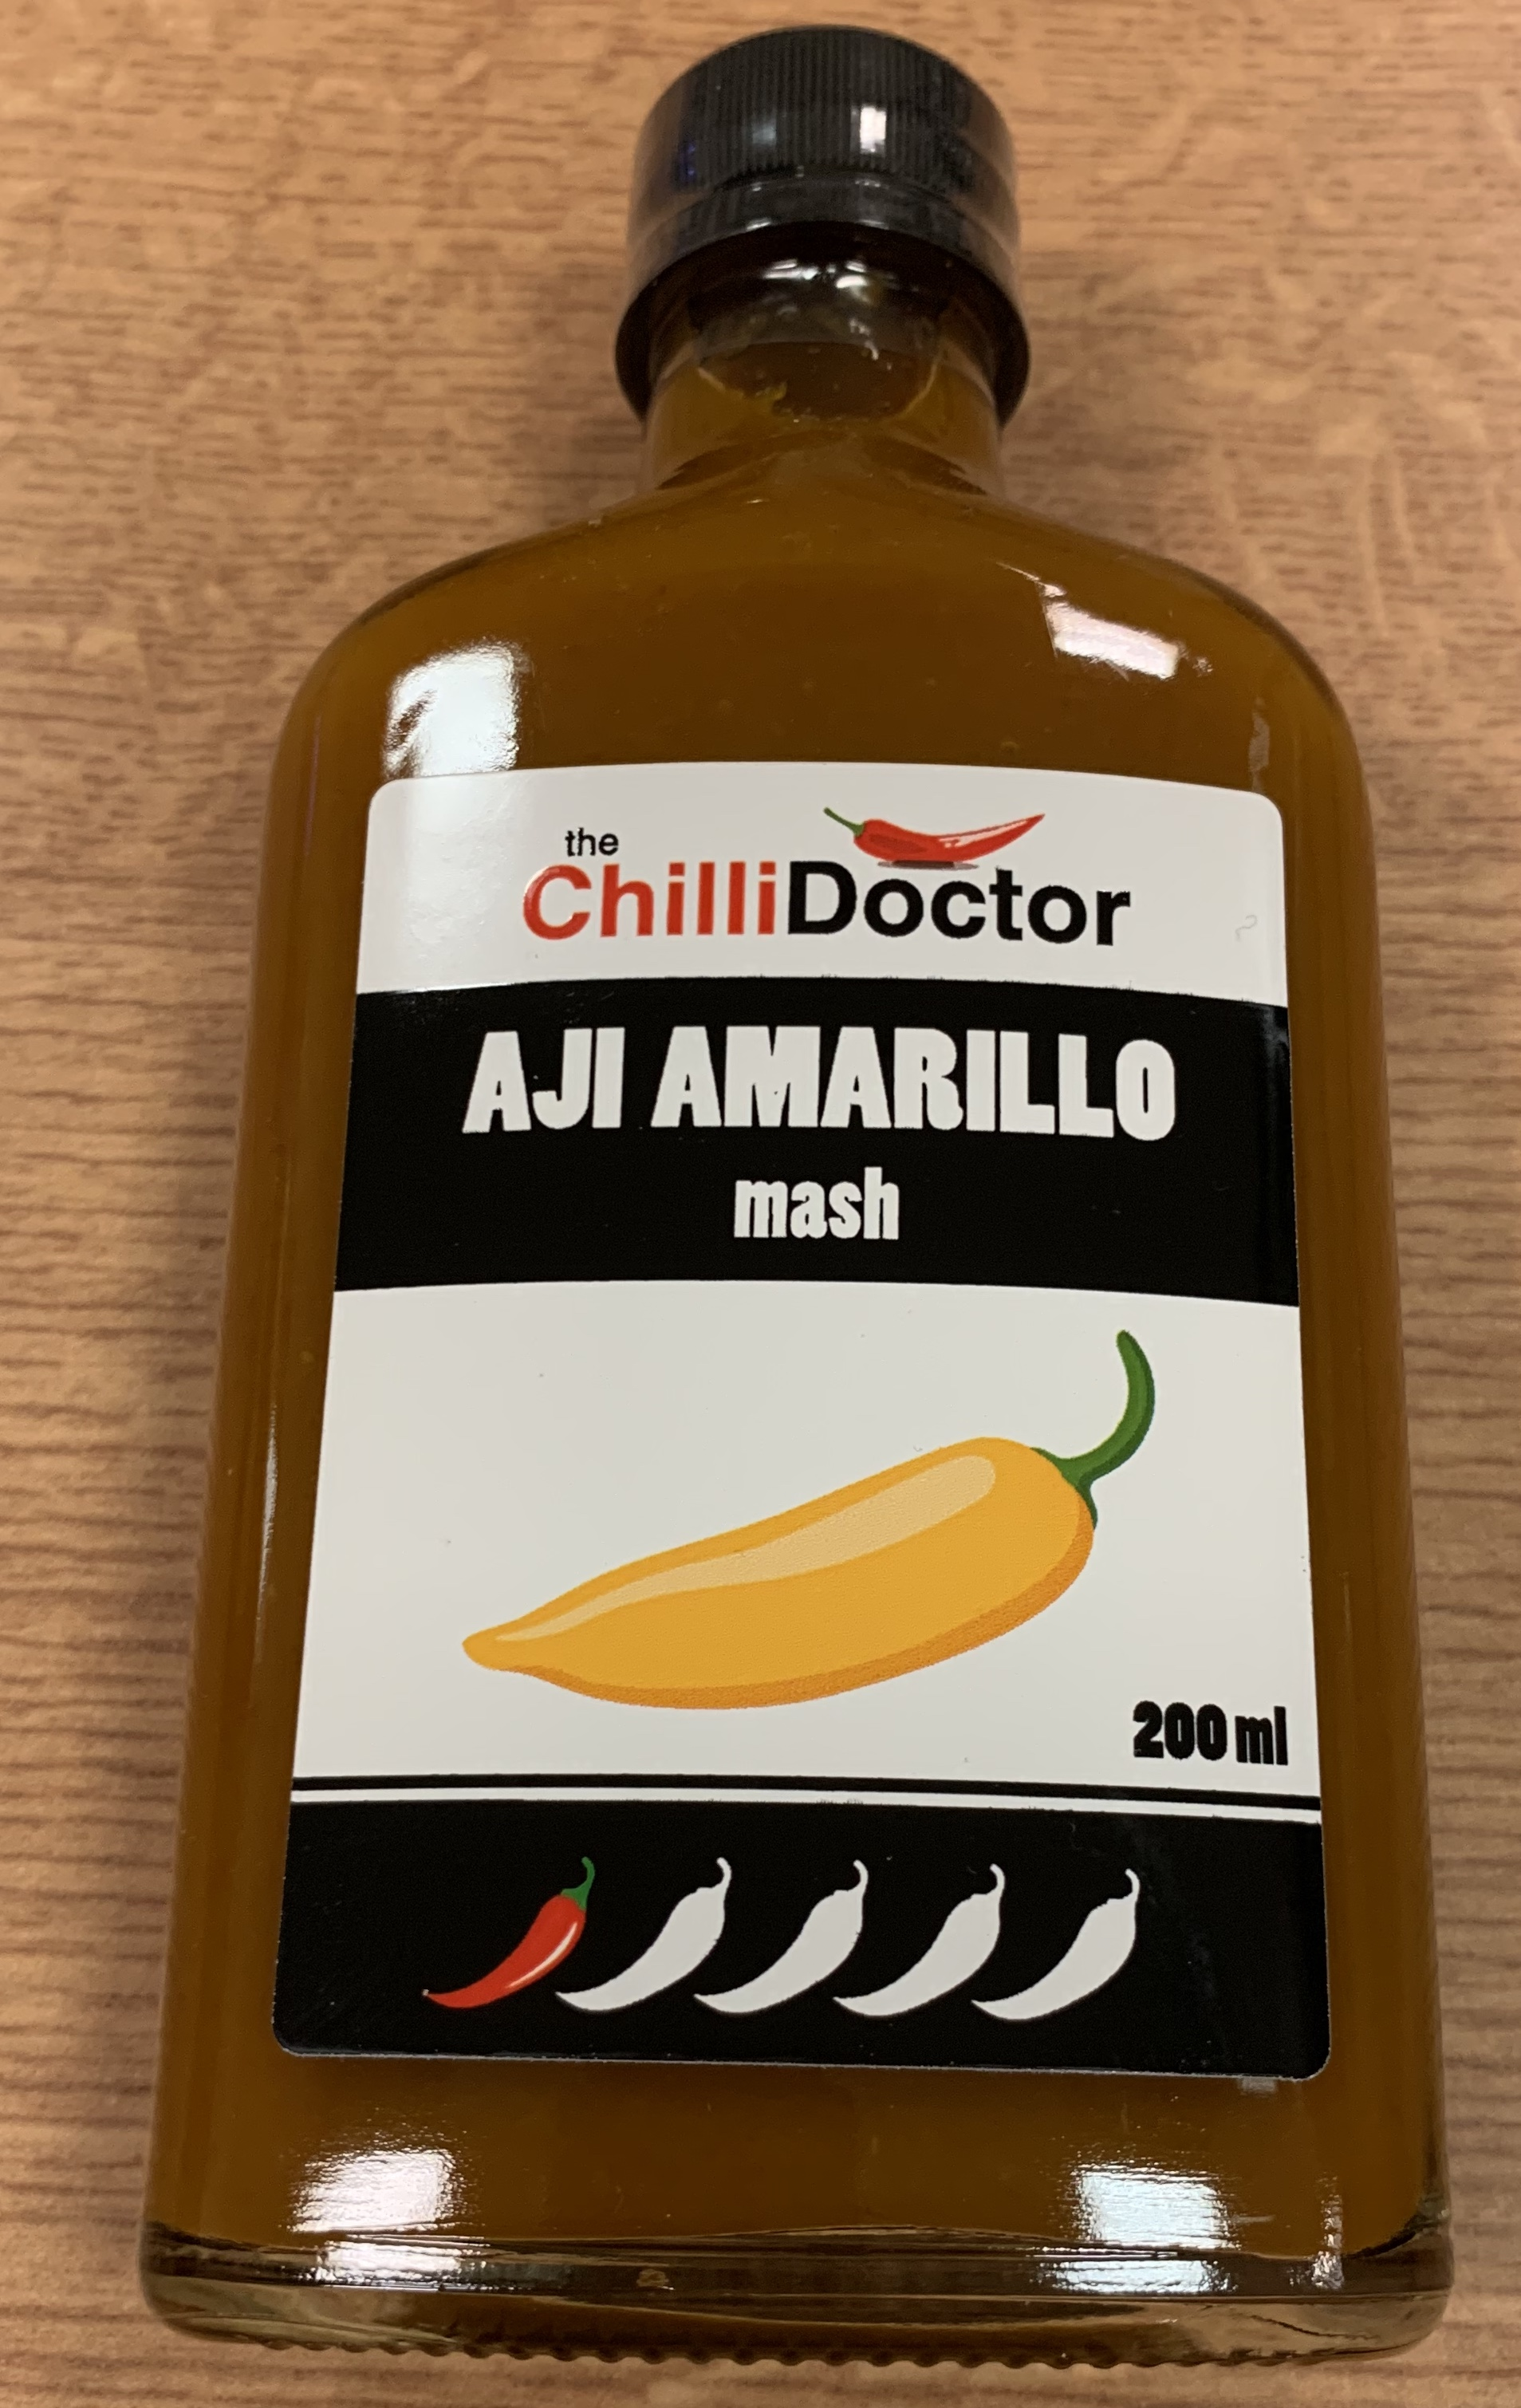 Aji Amarillo mash 200 ml